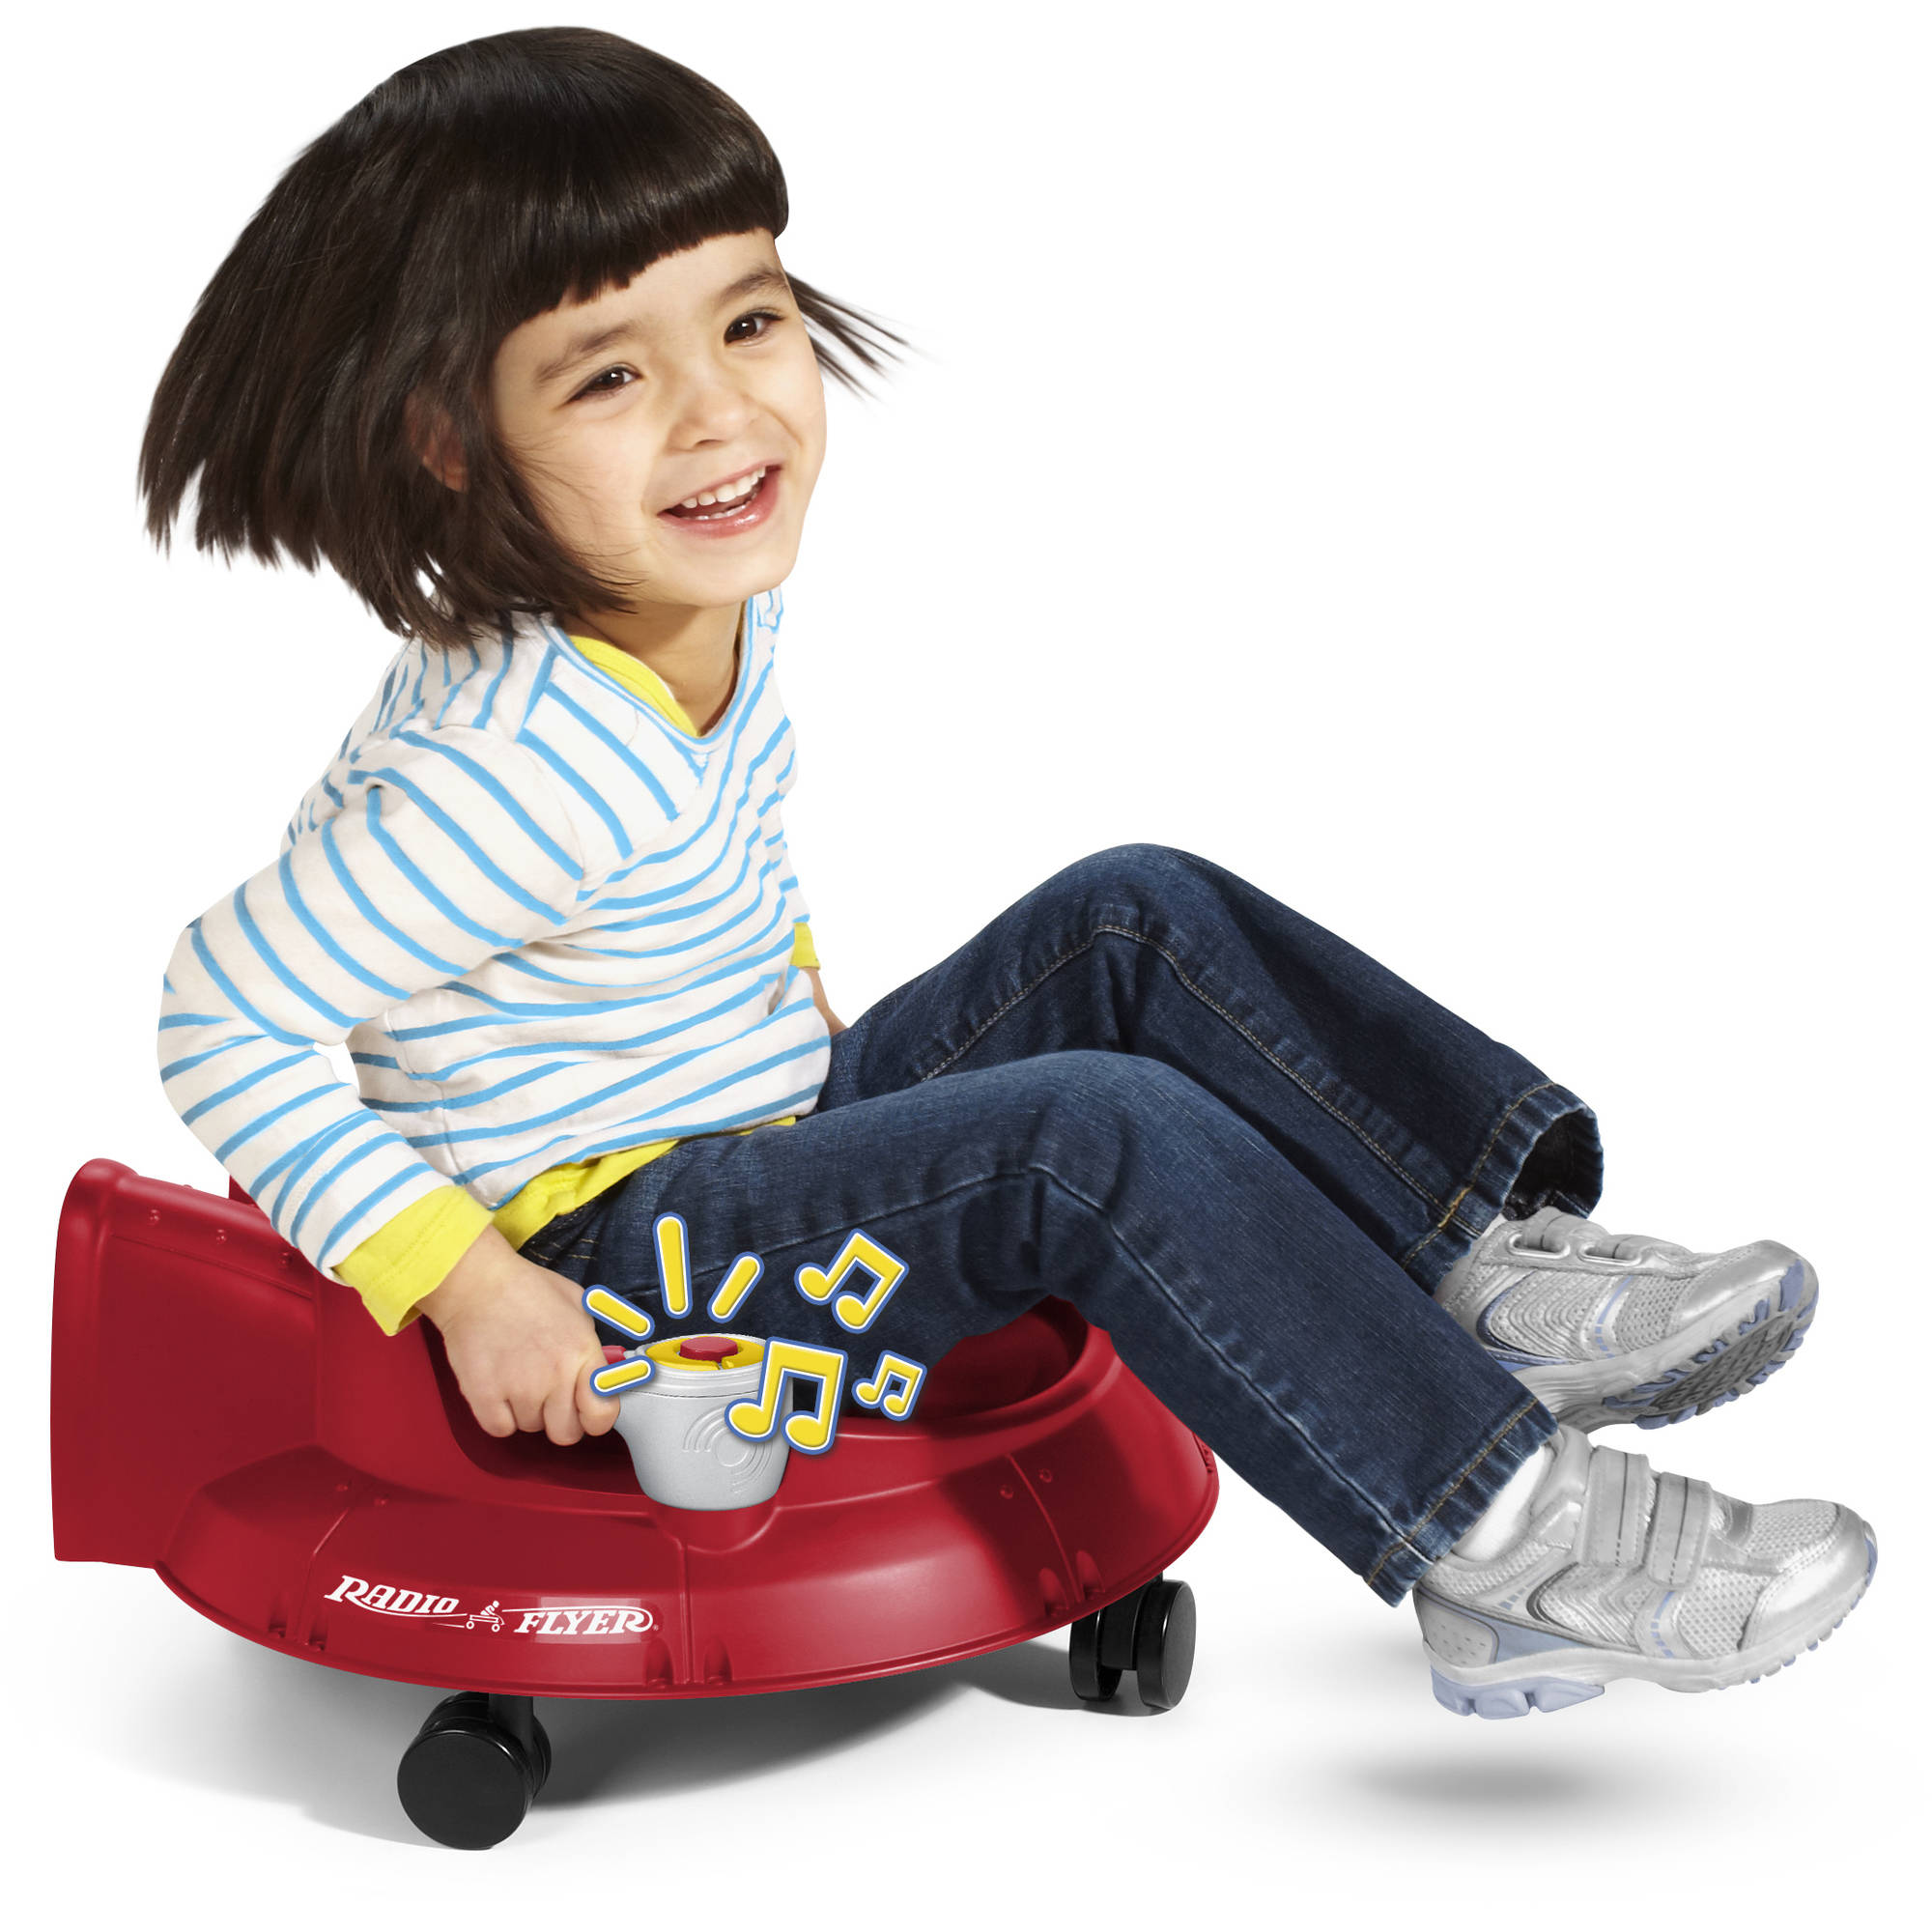 Radio Flyer Spin 'N Saucer Ride-On with Lights and Sounds